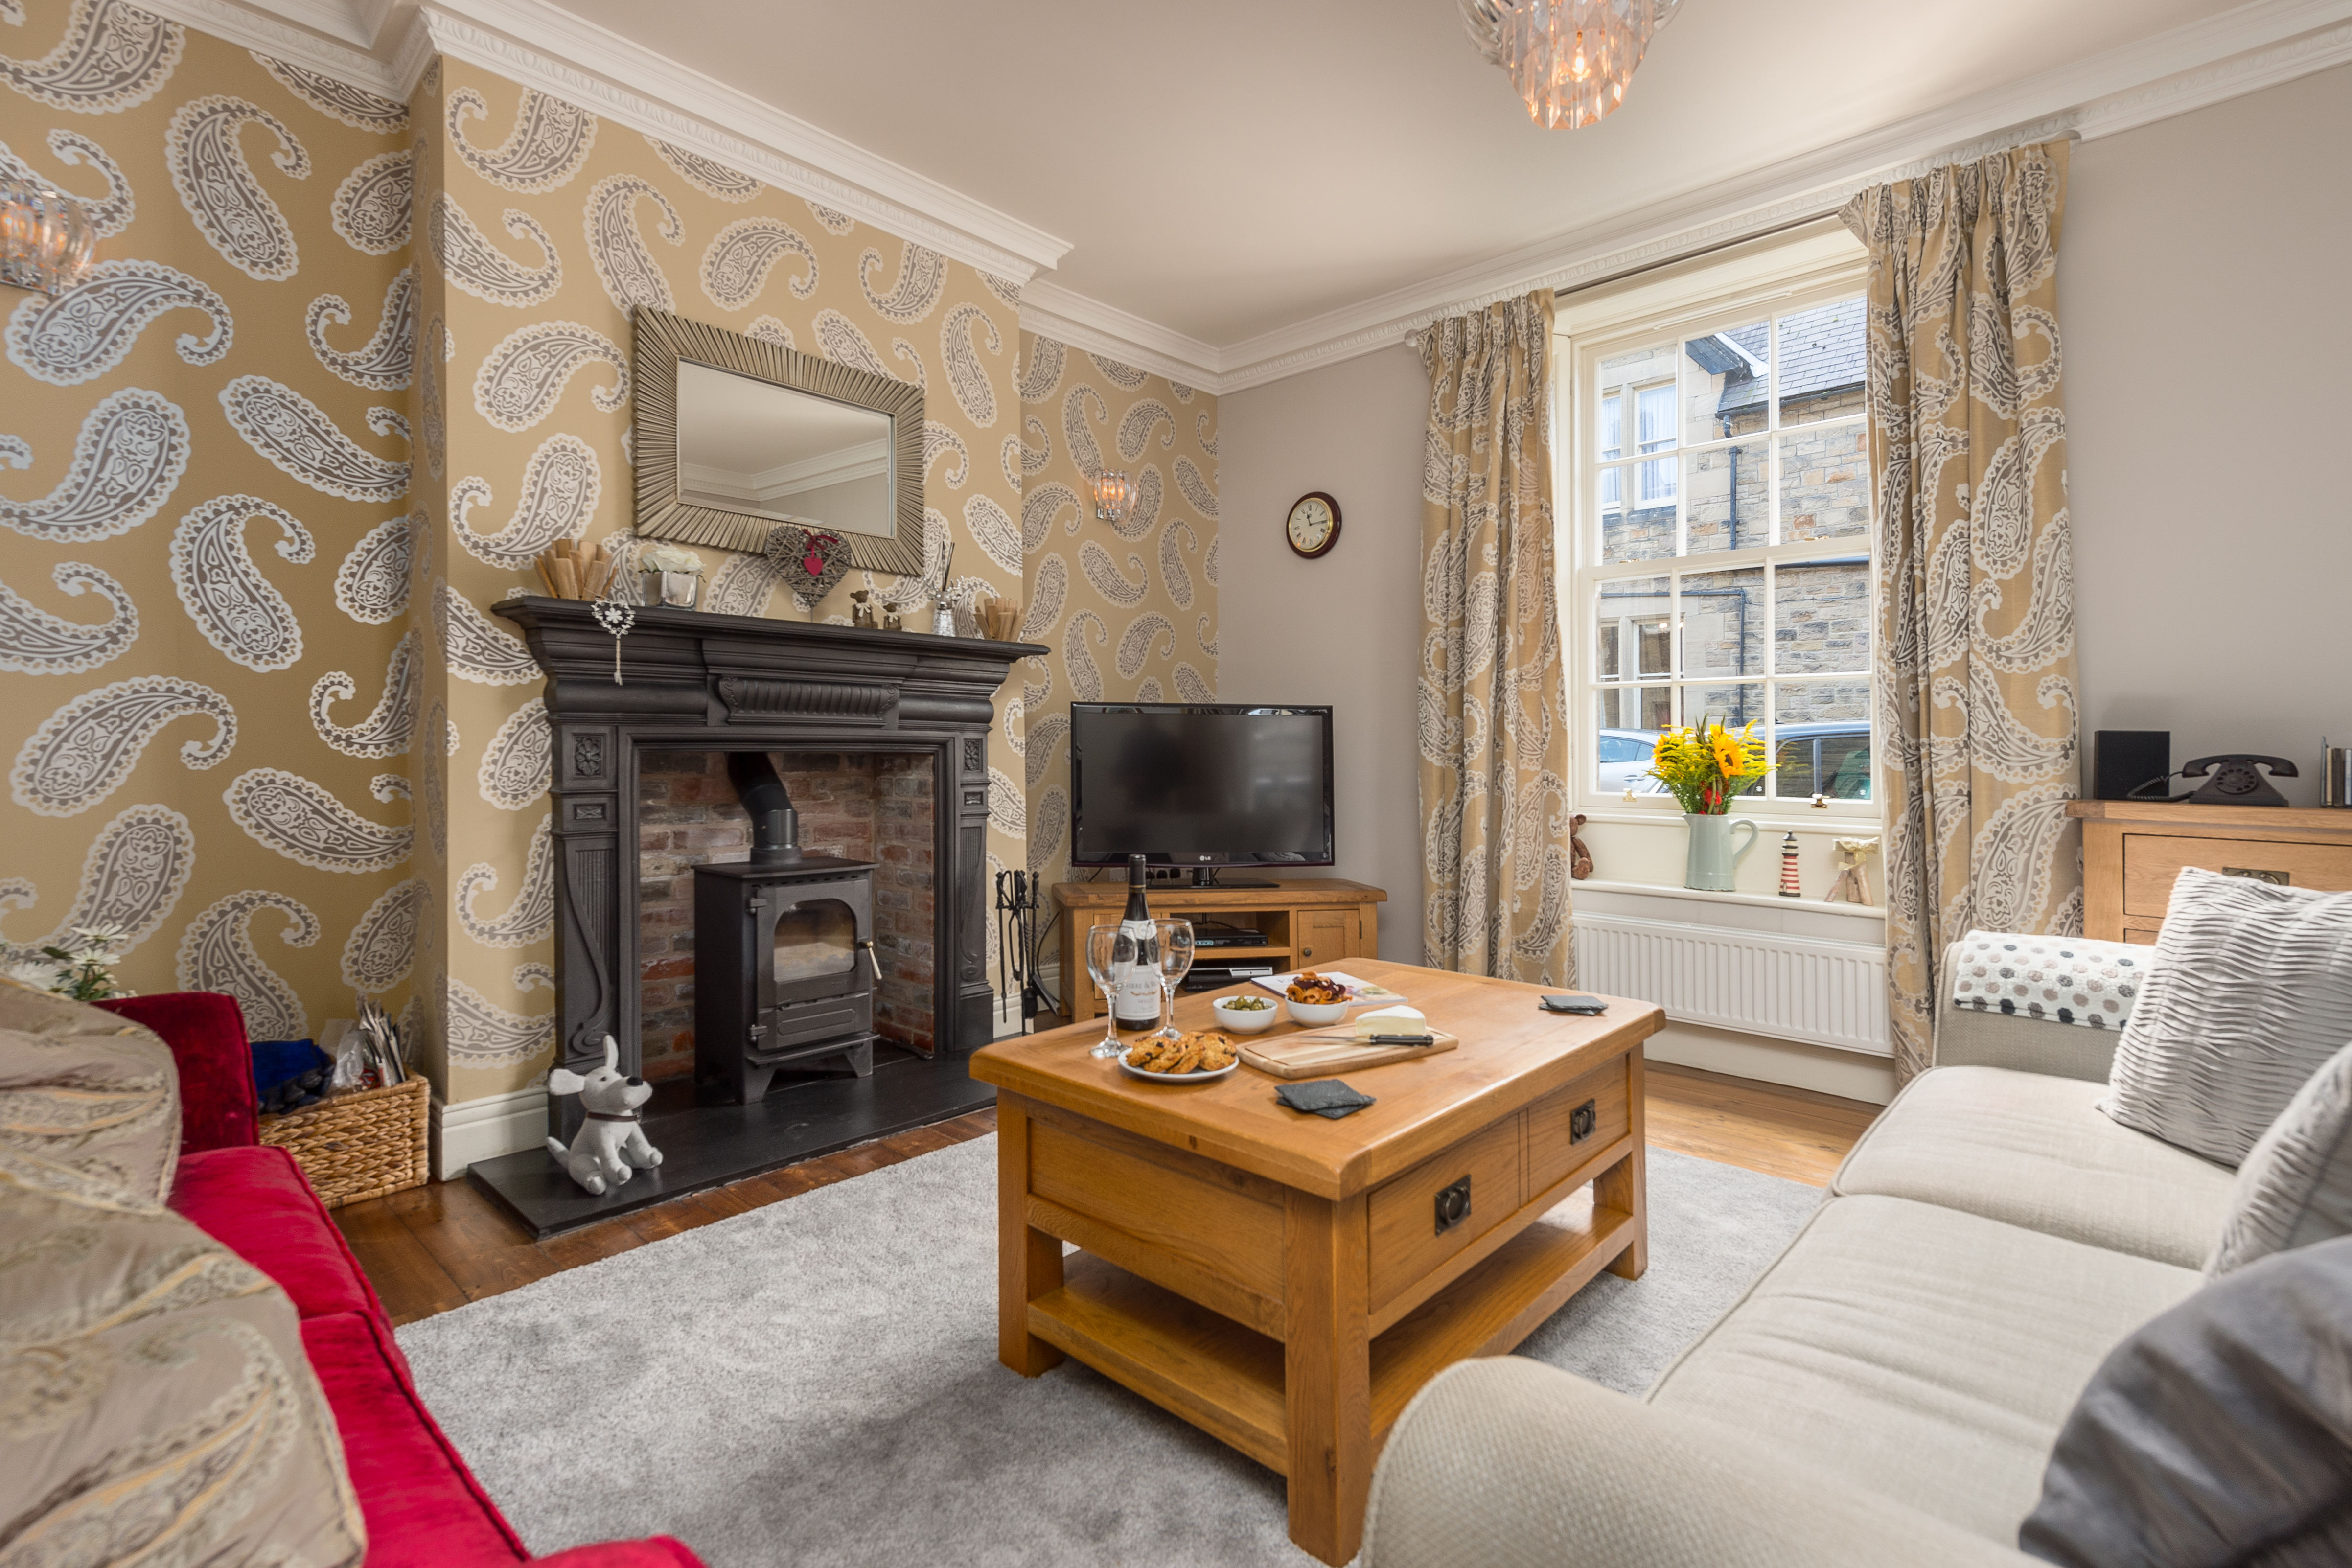 Barter Books in Alnwick, holiday accommodation for couples, large cottages for couples, luxury cottages for couples 5 star, dog friendly cottages near Alnwick Northumberland